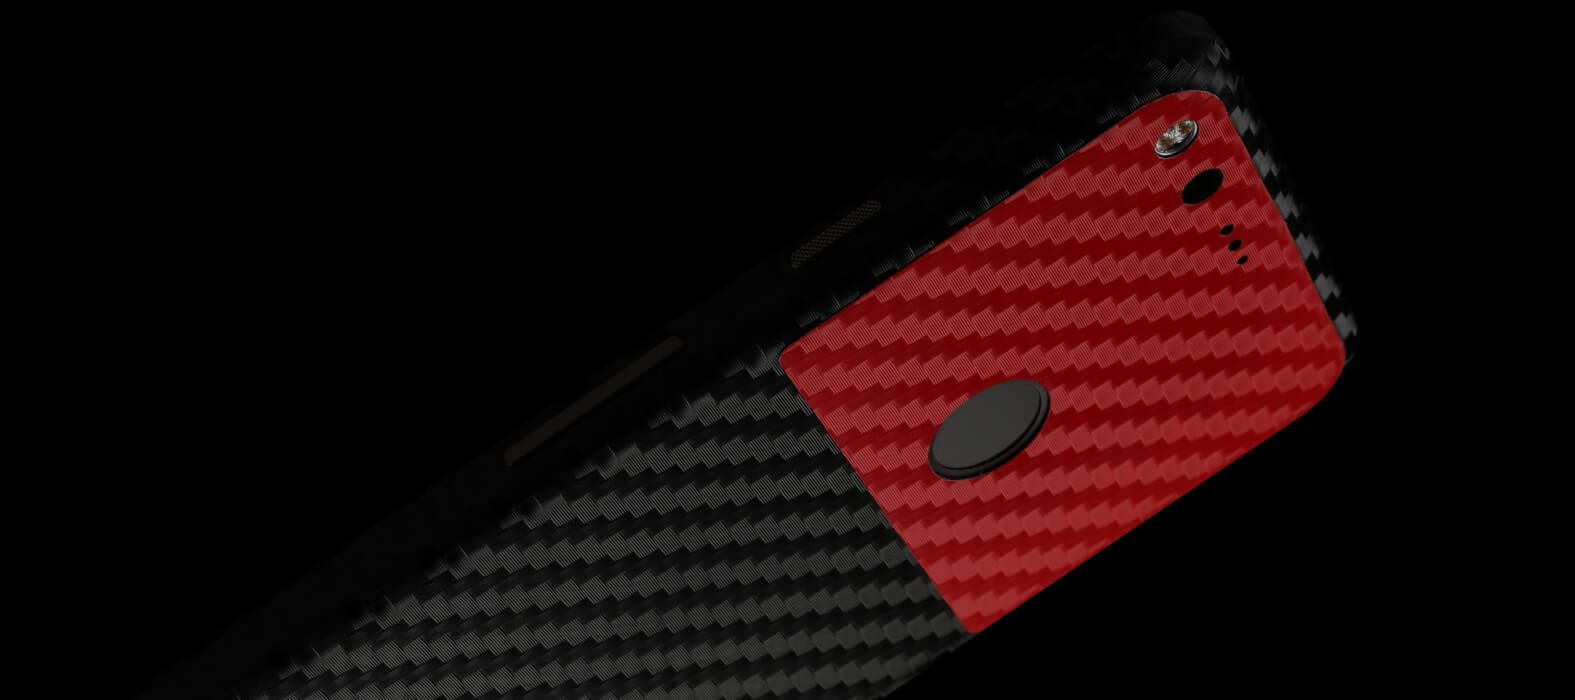 Pixel XL Wraps, Skins & Decals - Black carbon fiber